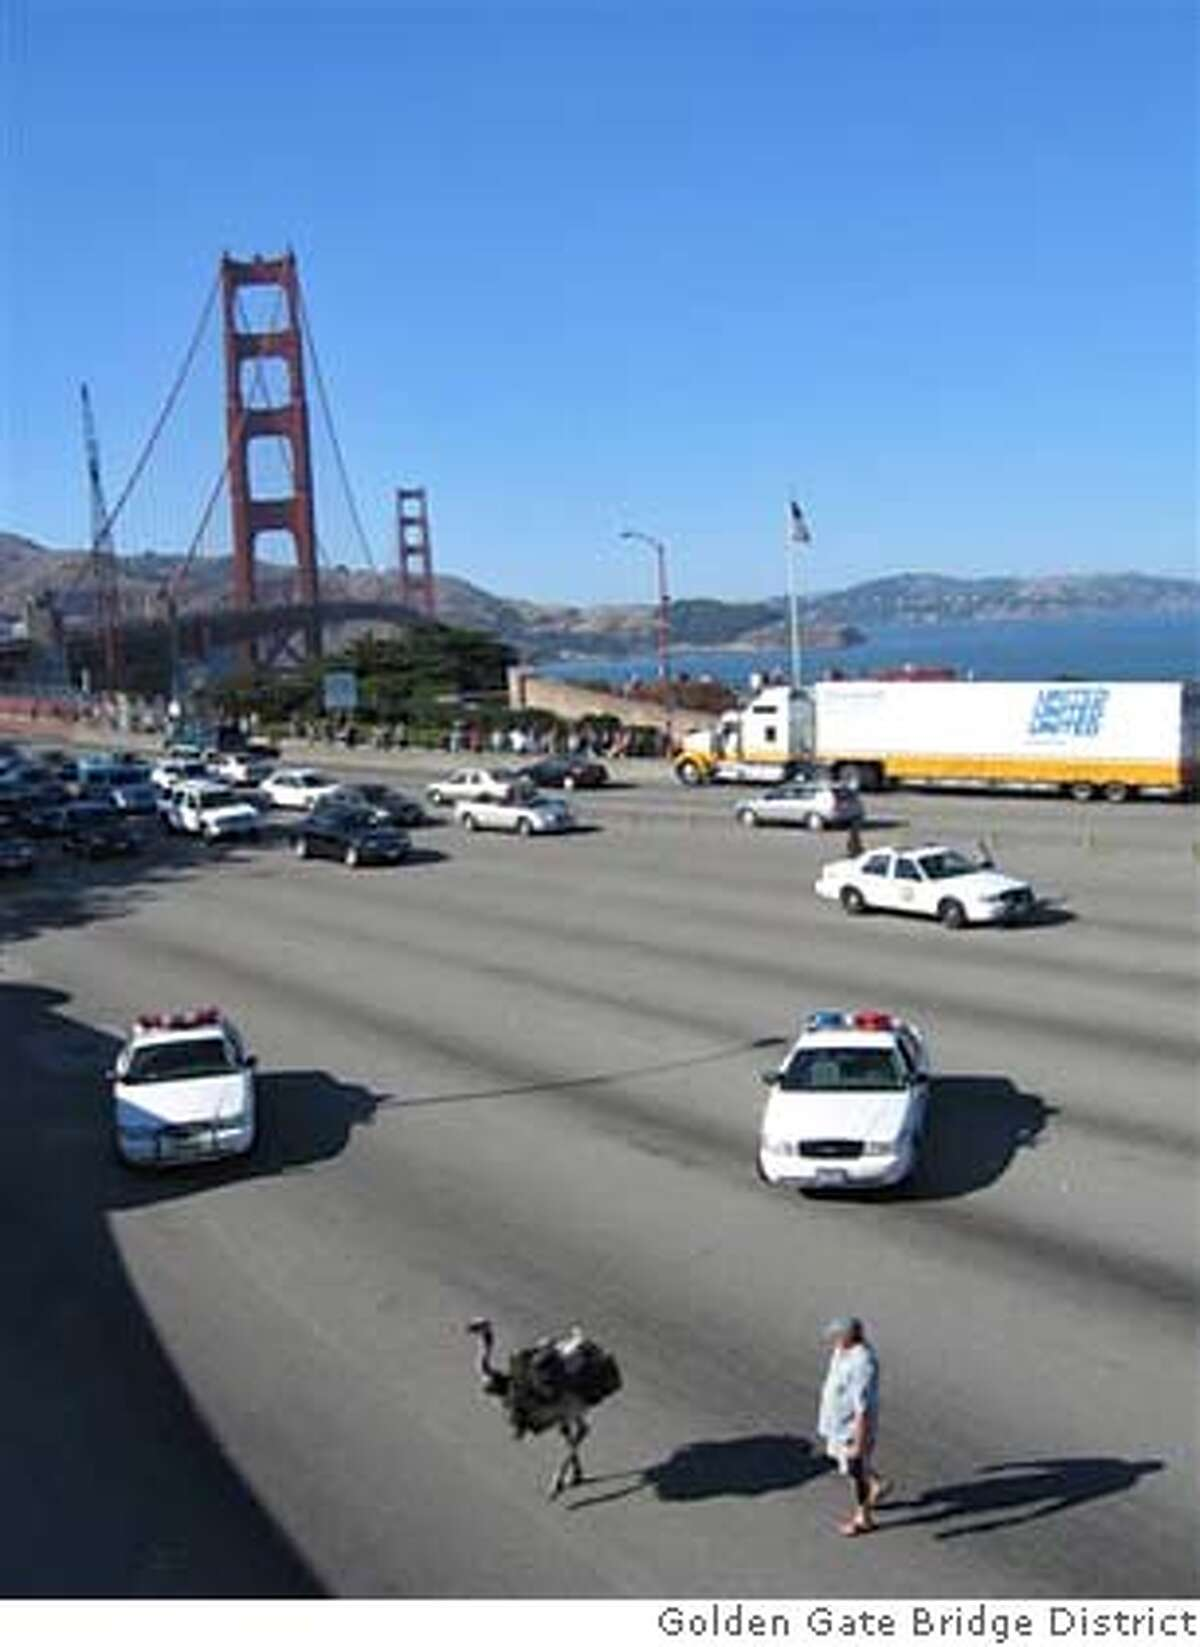 At 4:50 pm today, August 29, 2005, a female Ostrich somehow got out of a minivan heading northbound on the Golden Gate Bridge at the southern end of the Bridge. A second Ostrich did not get out. The owner, male, got of the mini van and began pursuit as the bird traveled southbound toward the toll plaza. The mini van was driven off the Bridge by the passenger in the van after the owner got out. PHOTOS COURTESY OF A. Ko, Golden Gate Bridge District